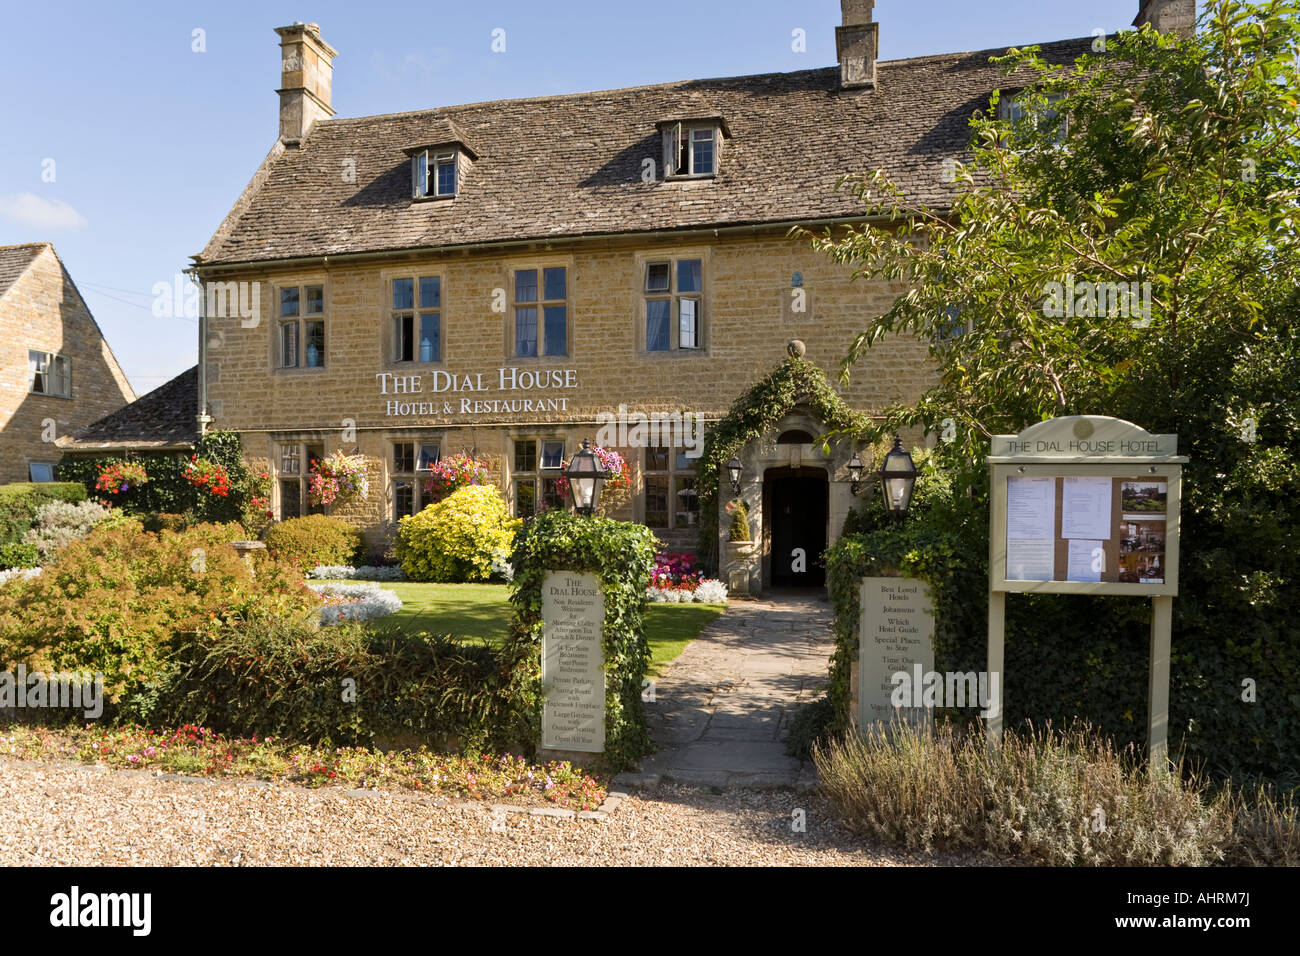 The Dial House Hotel Restaurant in the Cotswold village of Bourton on the Water, Gloucestershire - Stock Image